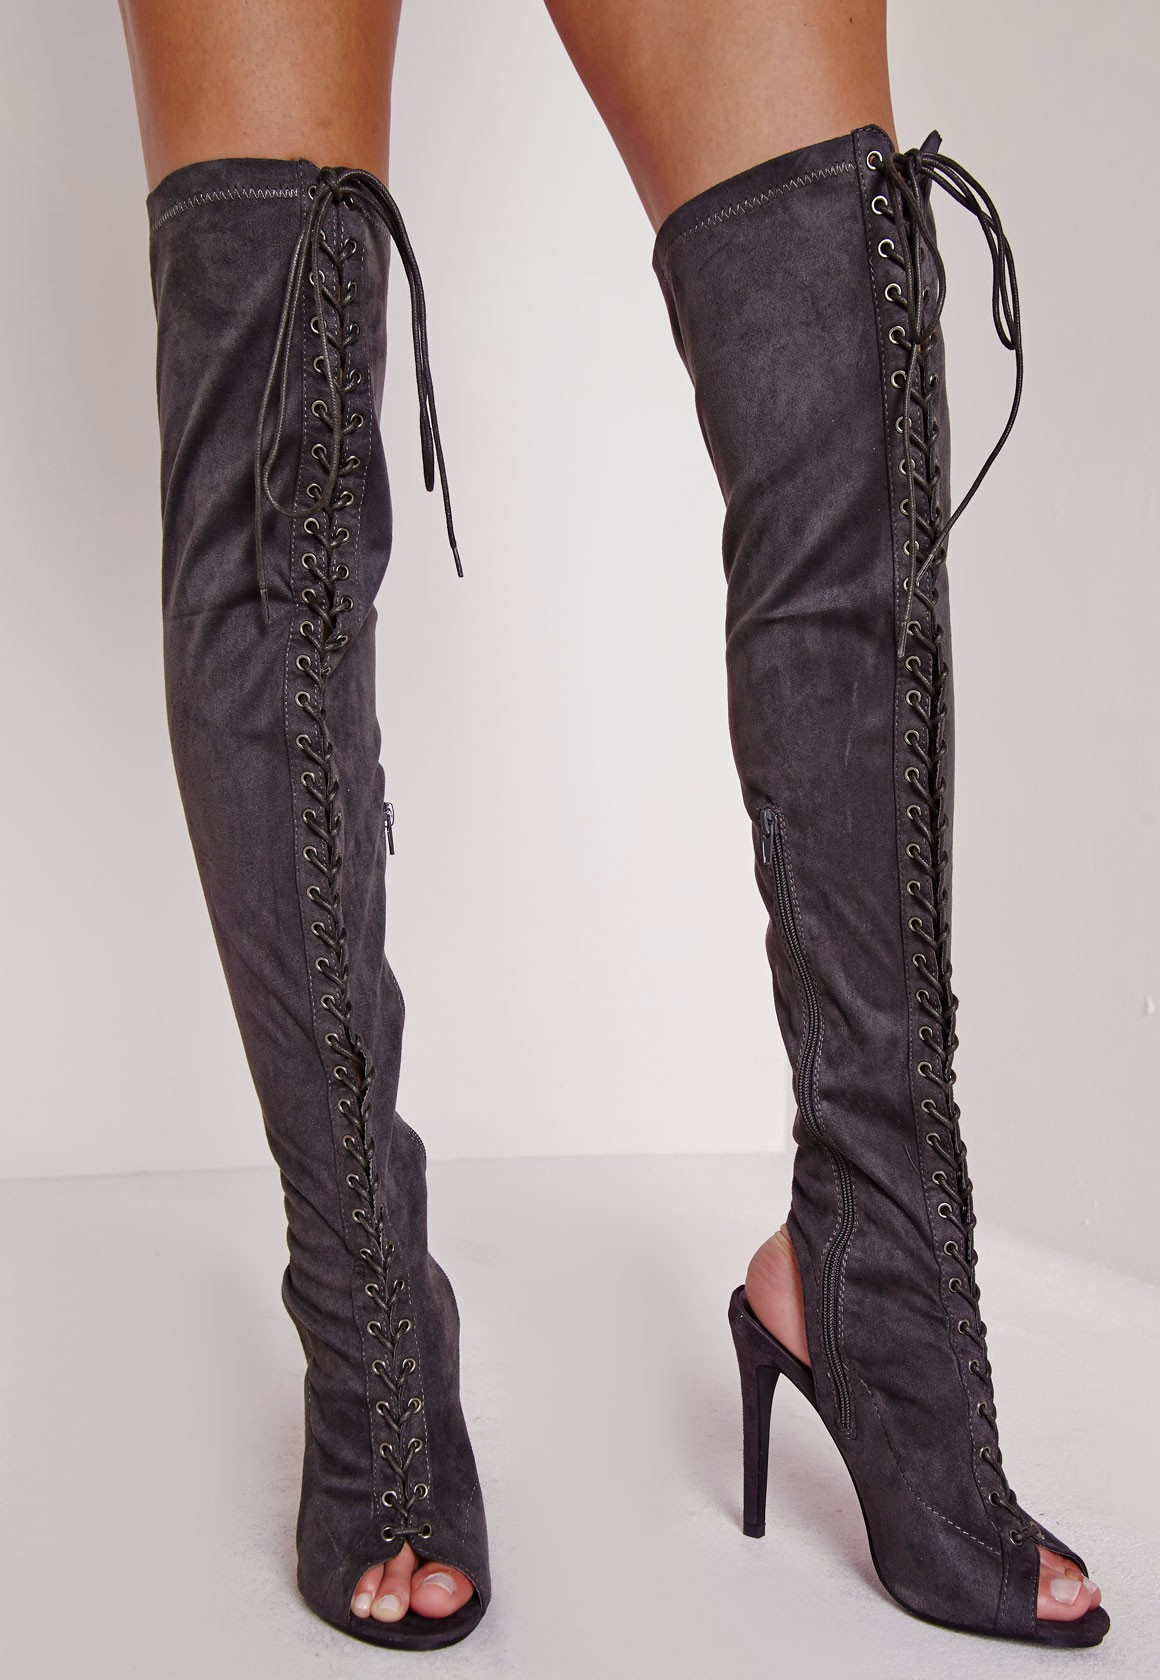 missguided-lace-up-boots.jpg